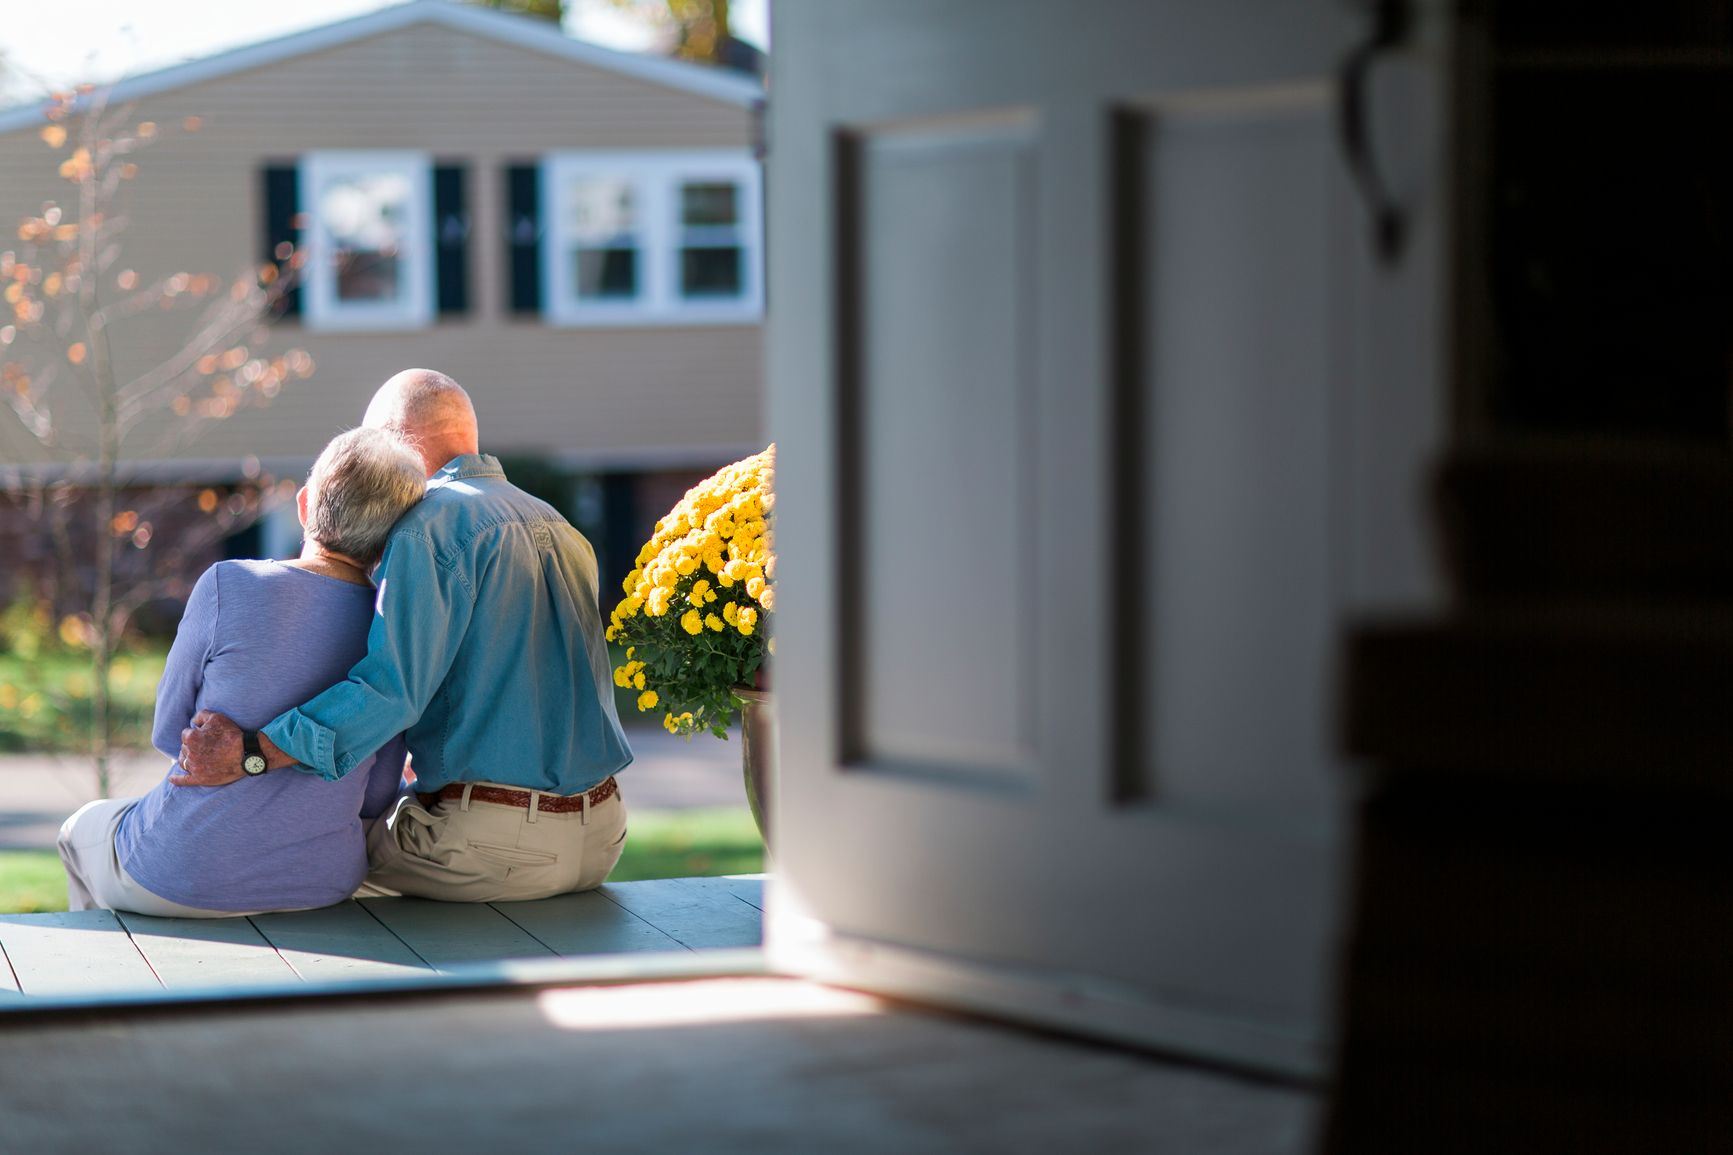 Mutual of Omaha Hugging couple, Aging in place, Tax